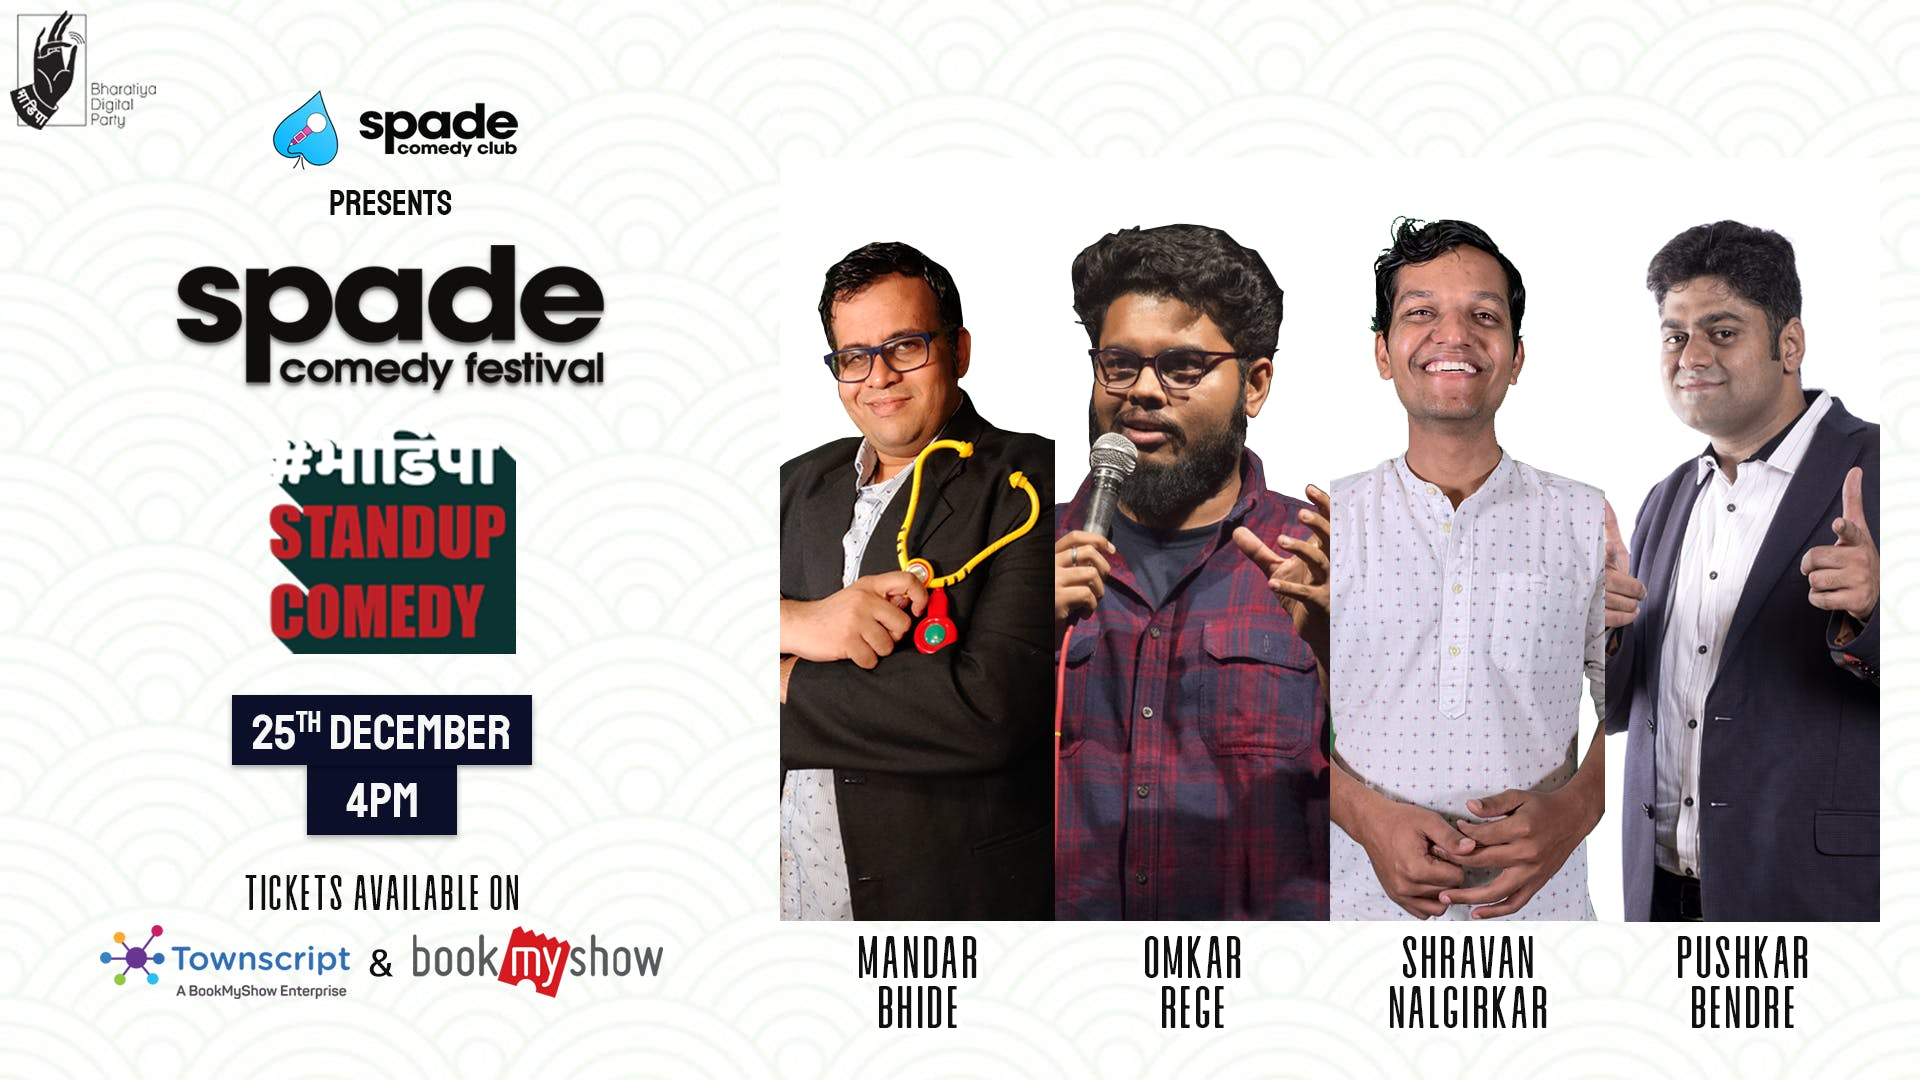 Bhadipa Stand Up Comedy at Spade Comedy Festival